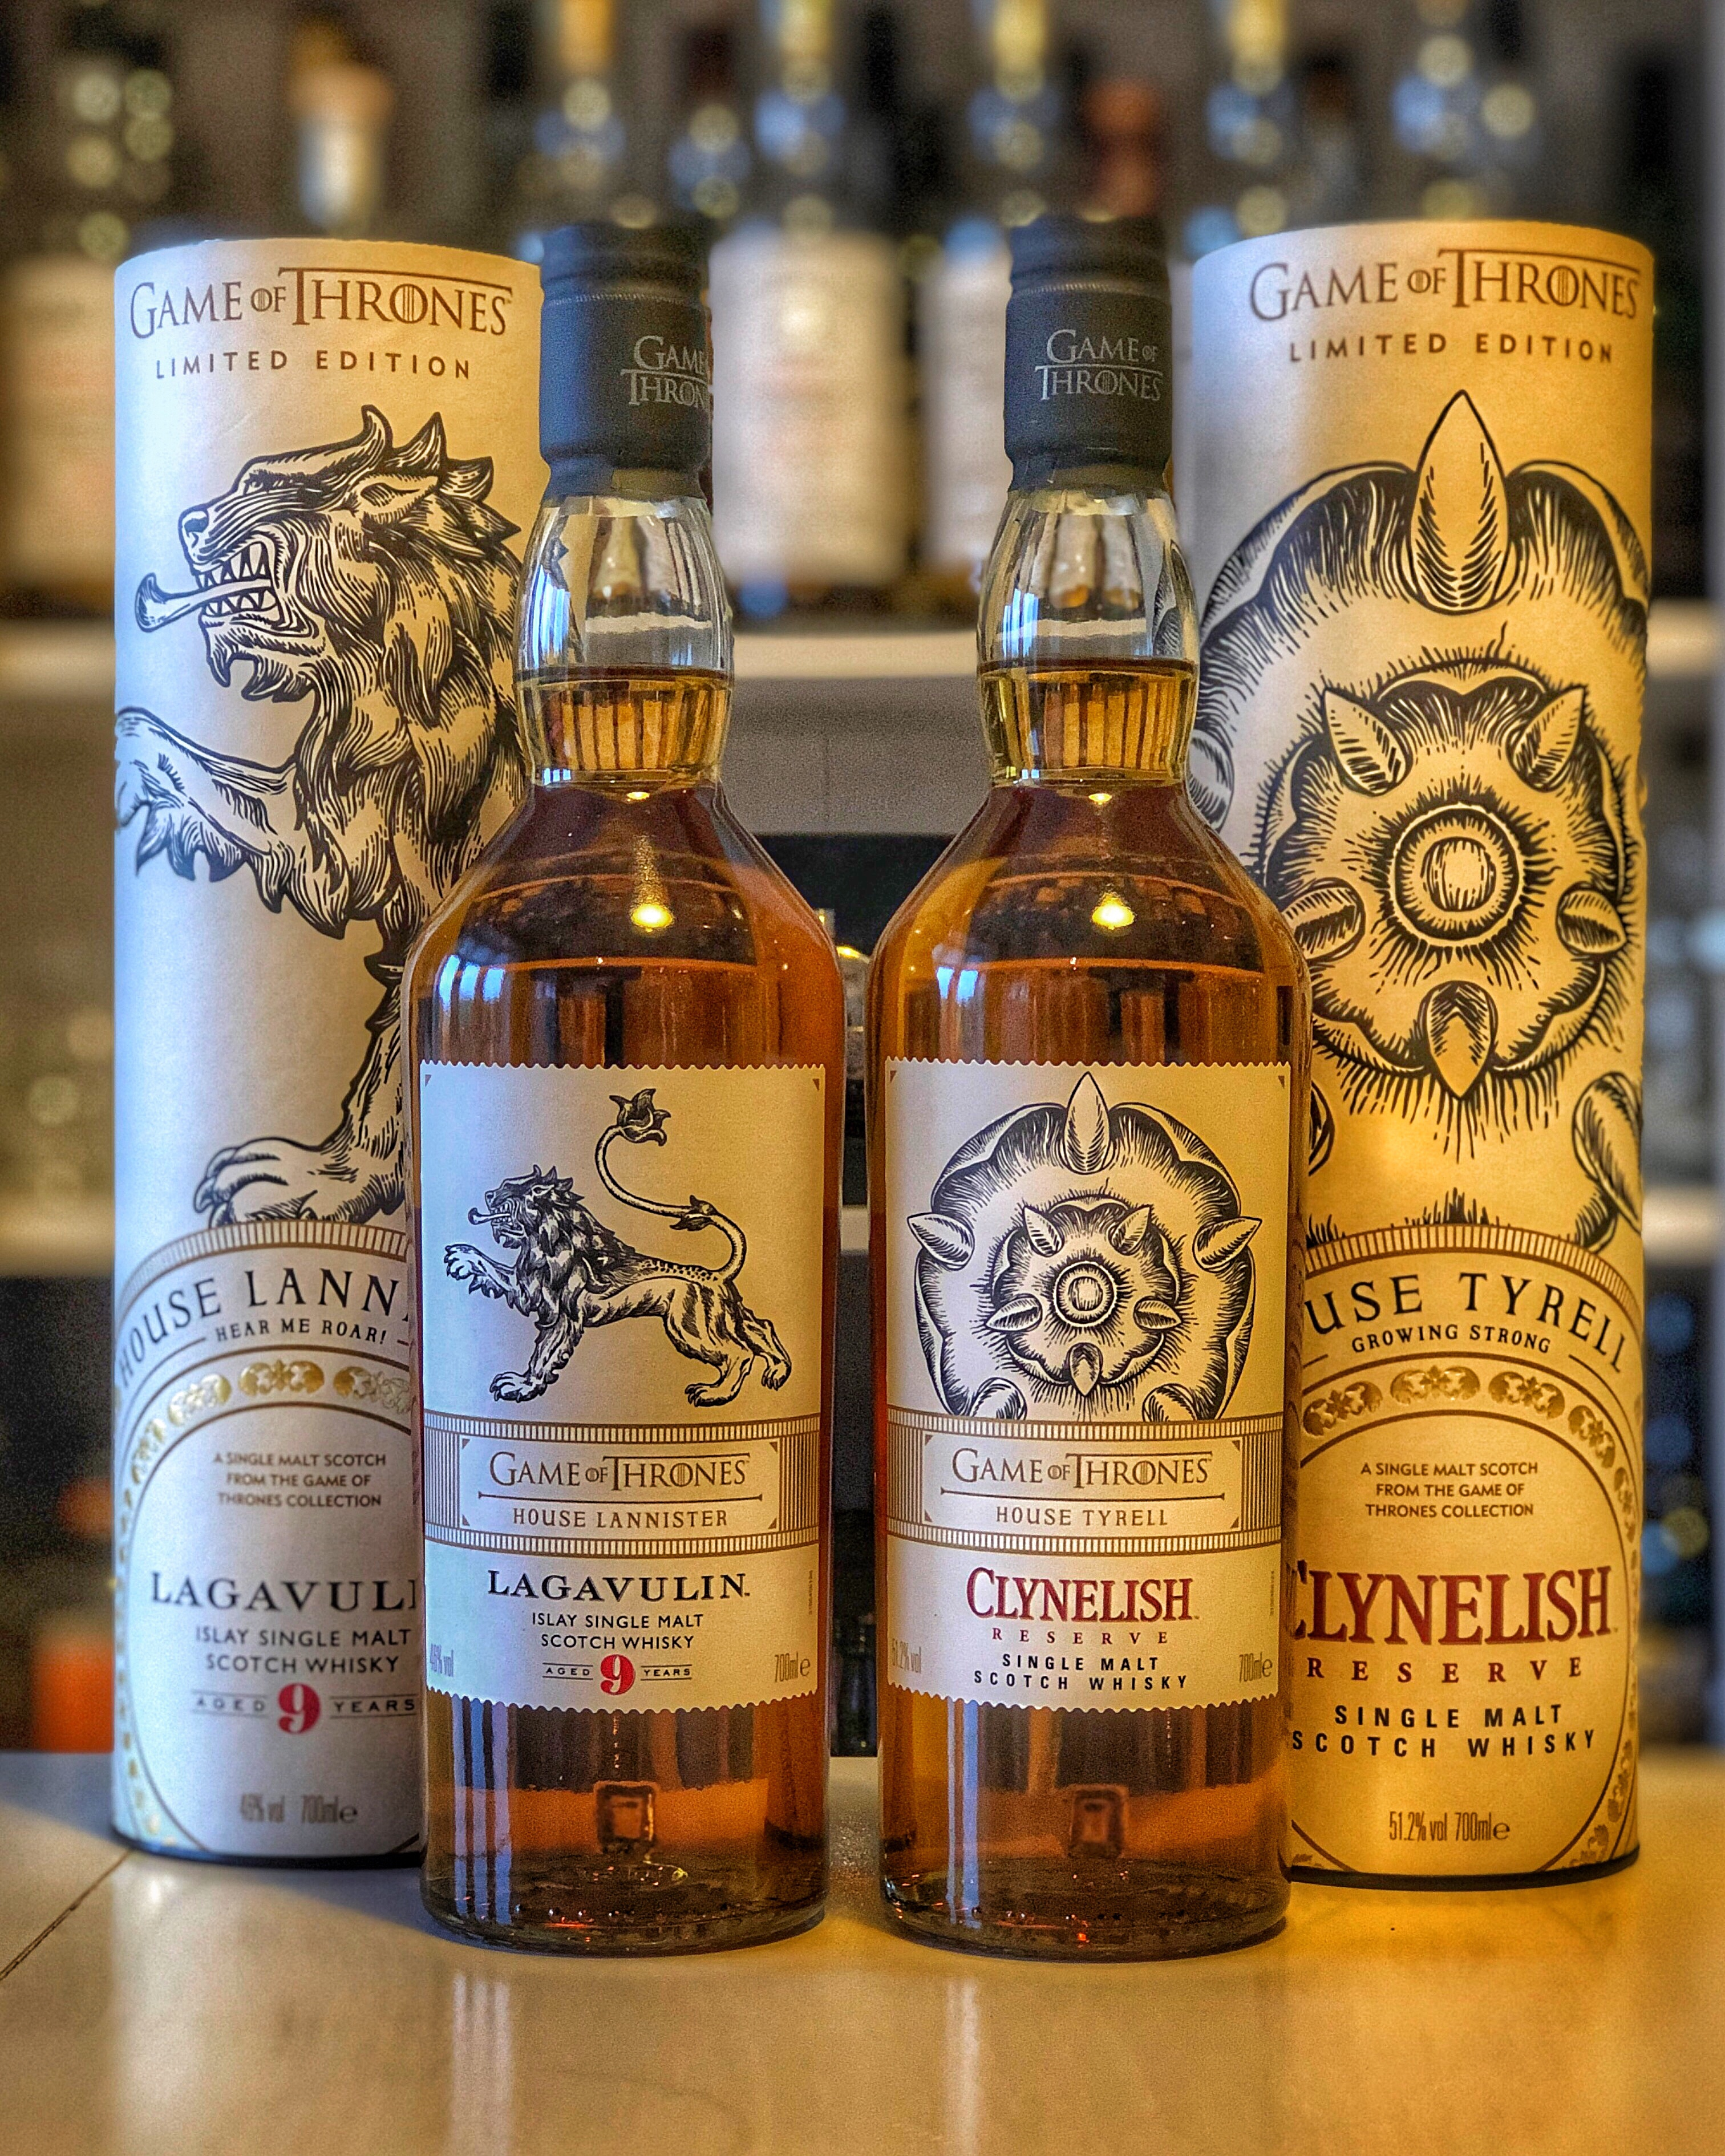 Game Of Thrones Whisky Lagavulin Clynelish Whisky Reviews